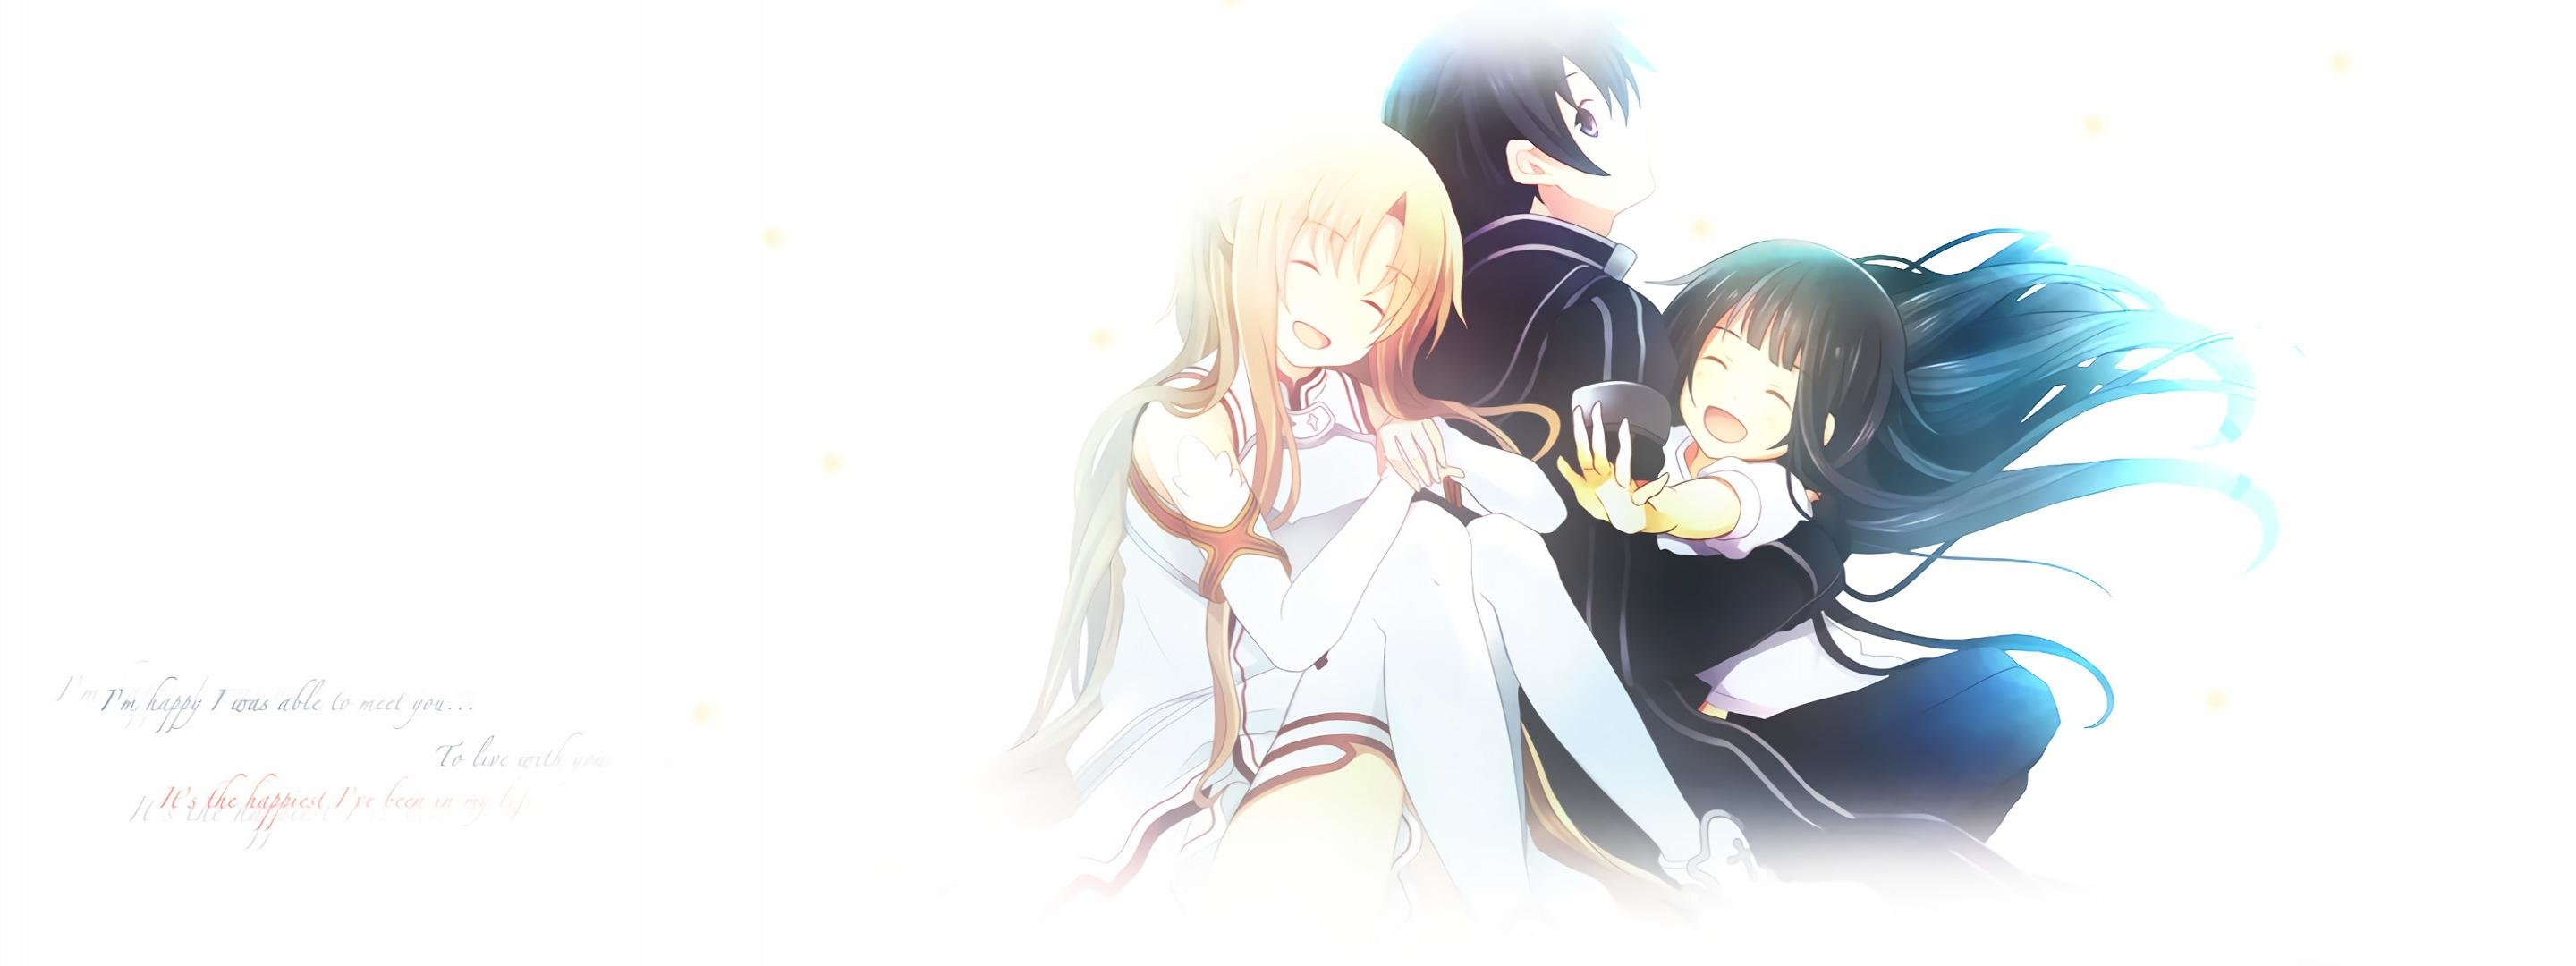 Free download Sword Art Online (SAO) background ID:181906 dual monitor 2880x1080 for PC